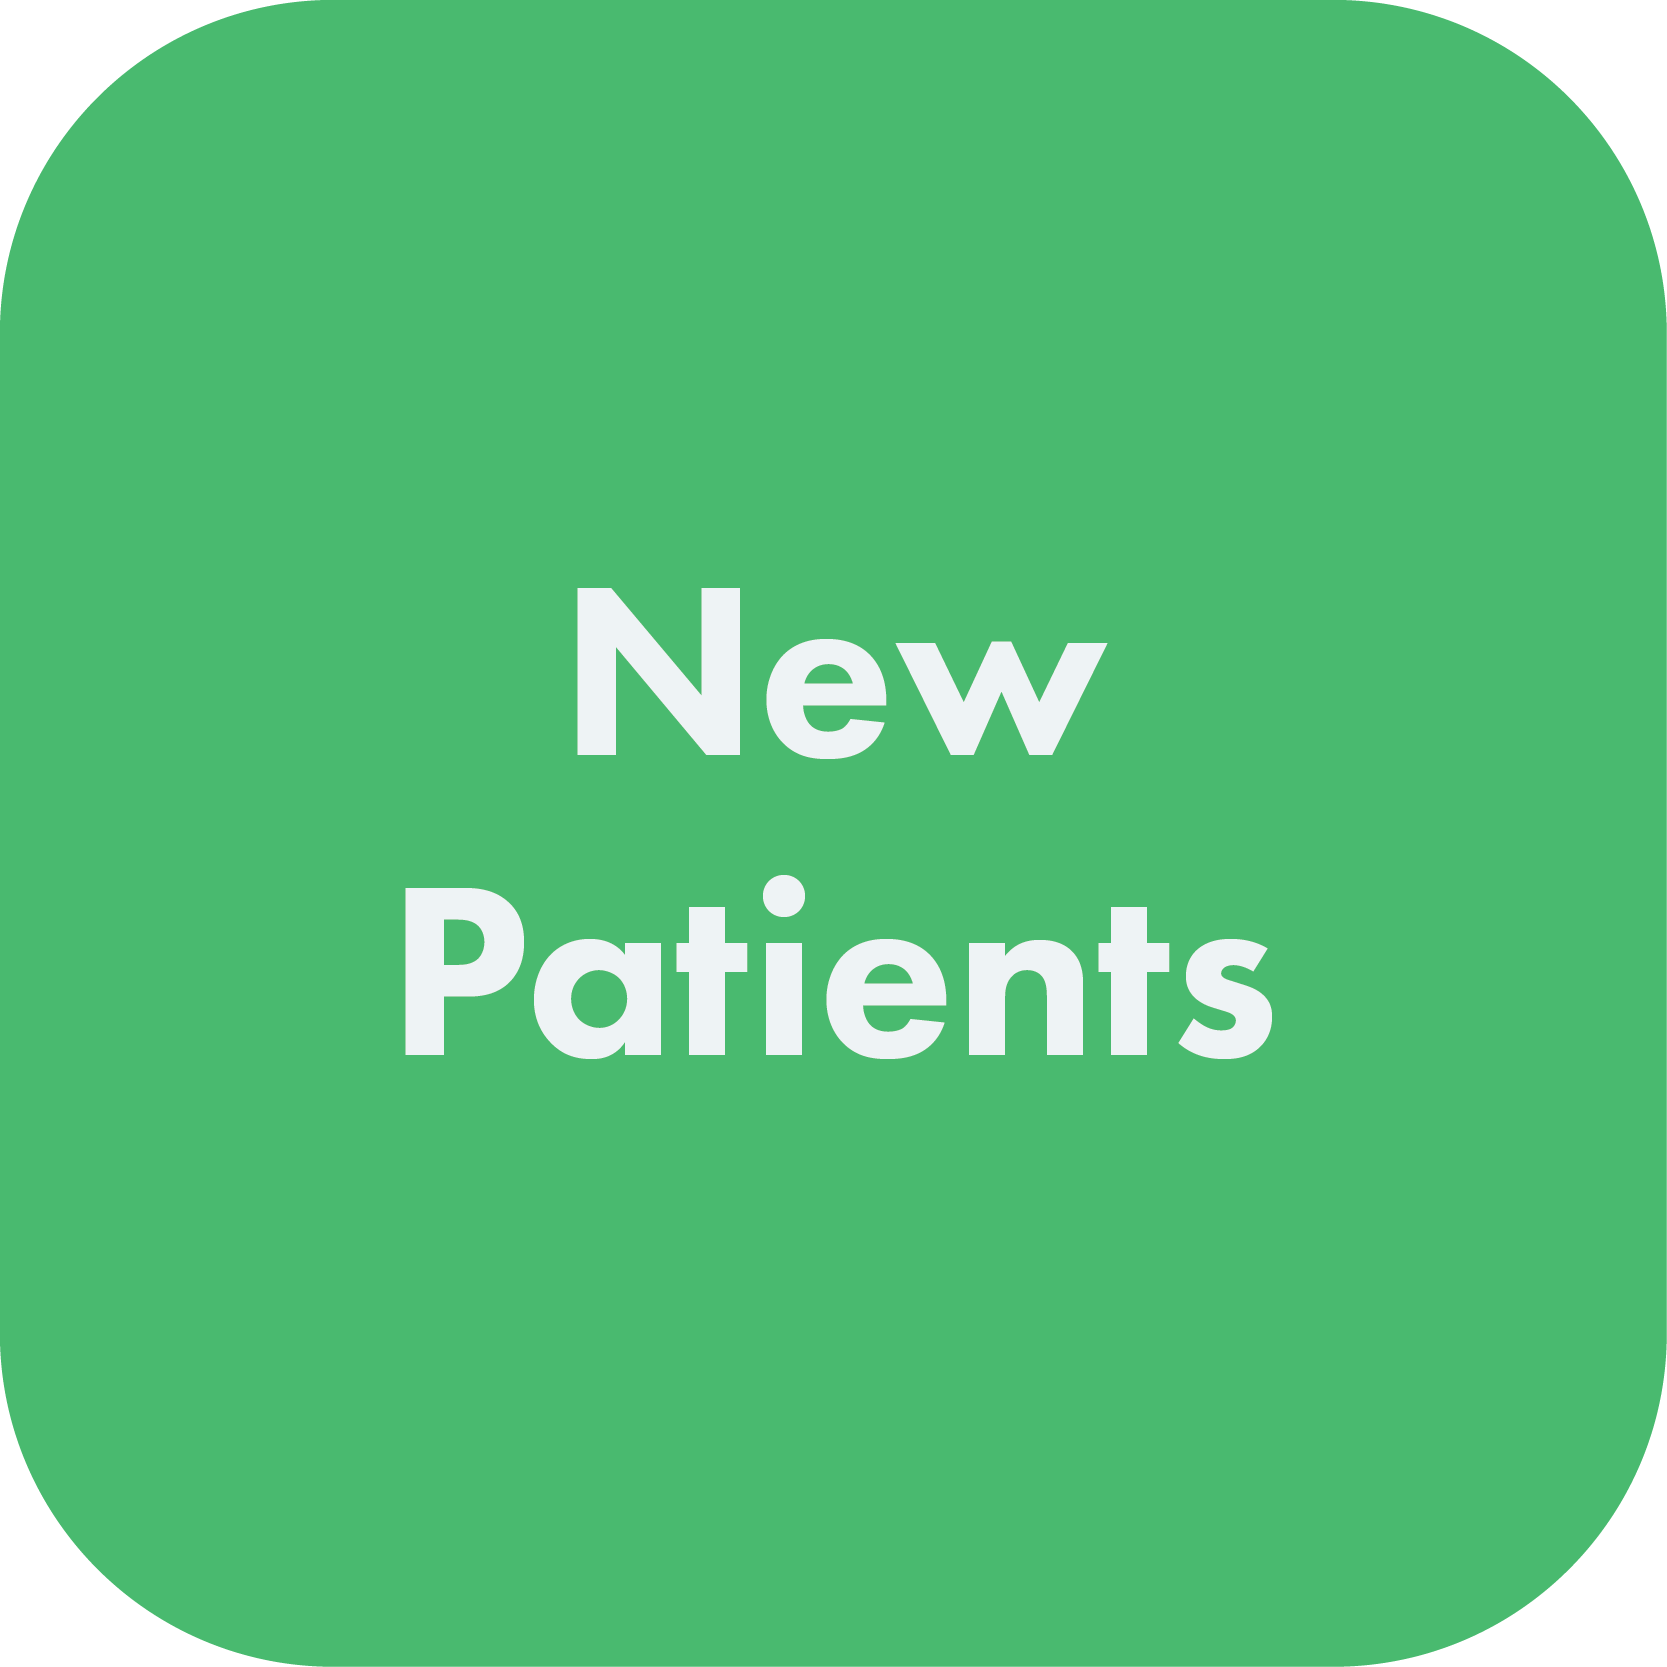 New Patients Button.png